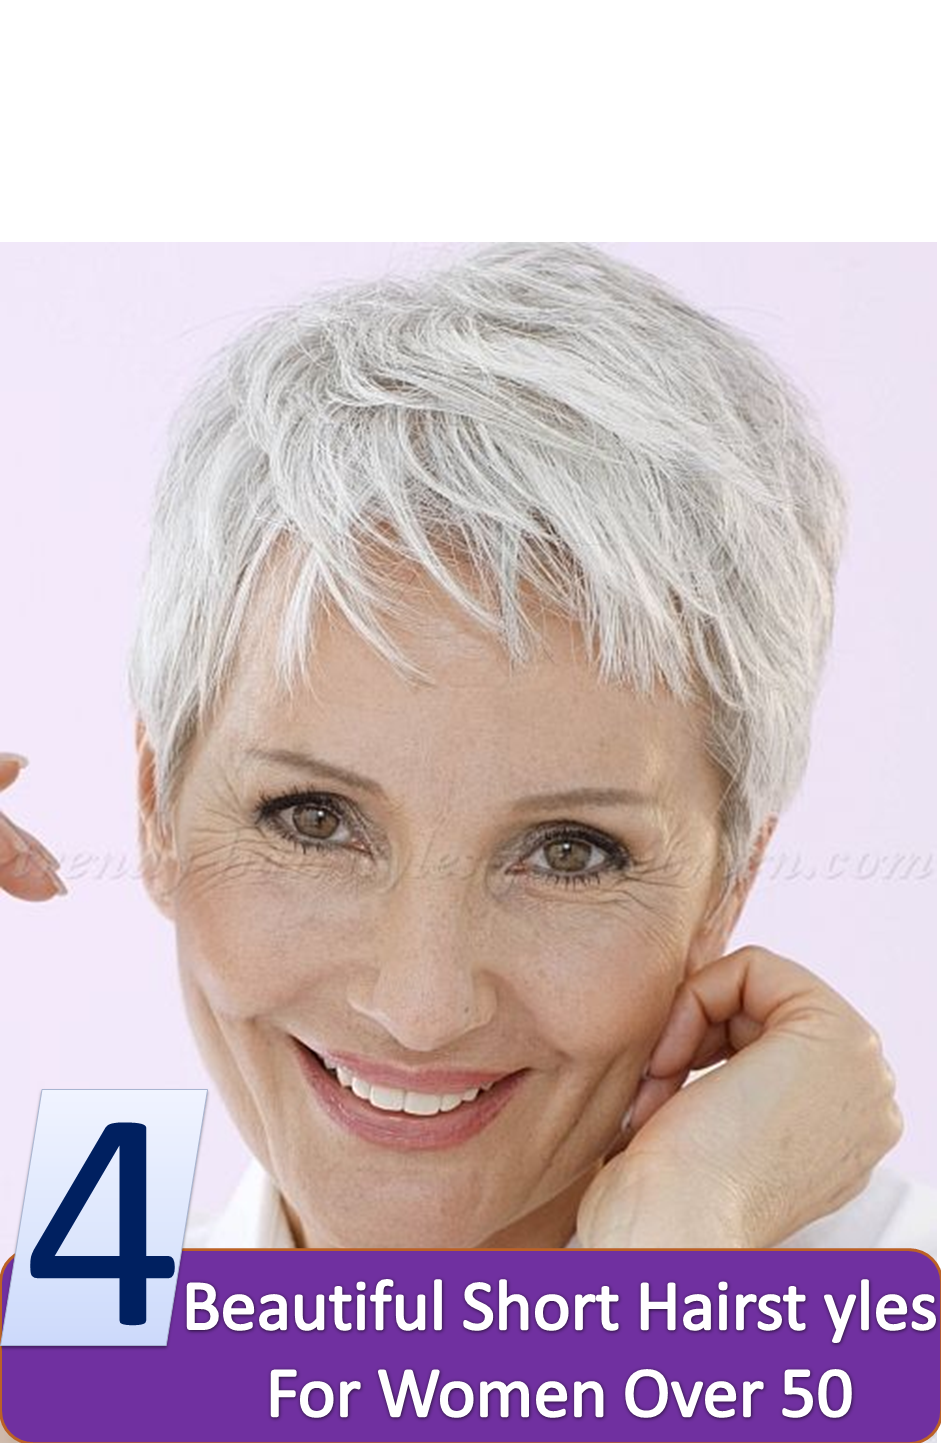 silver spring single women over 50 Ob-gyn associates is committed to earning the trust and confidence of women in the dc metro area we are a diverse group of practitioners dedicated to caring for women throughout their lifetime and staying on the cutting edge of the latest medical knowledge, equipment, and technology.